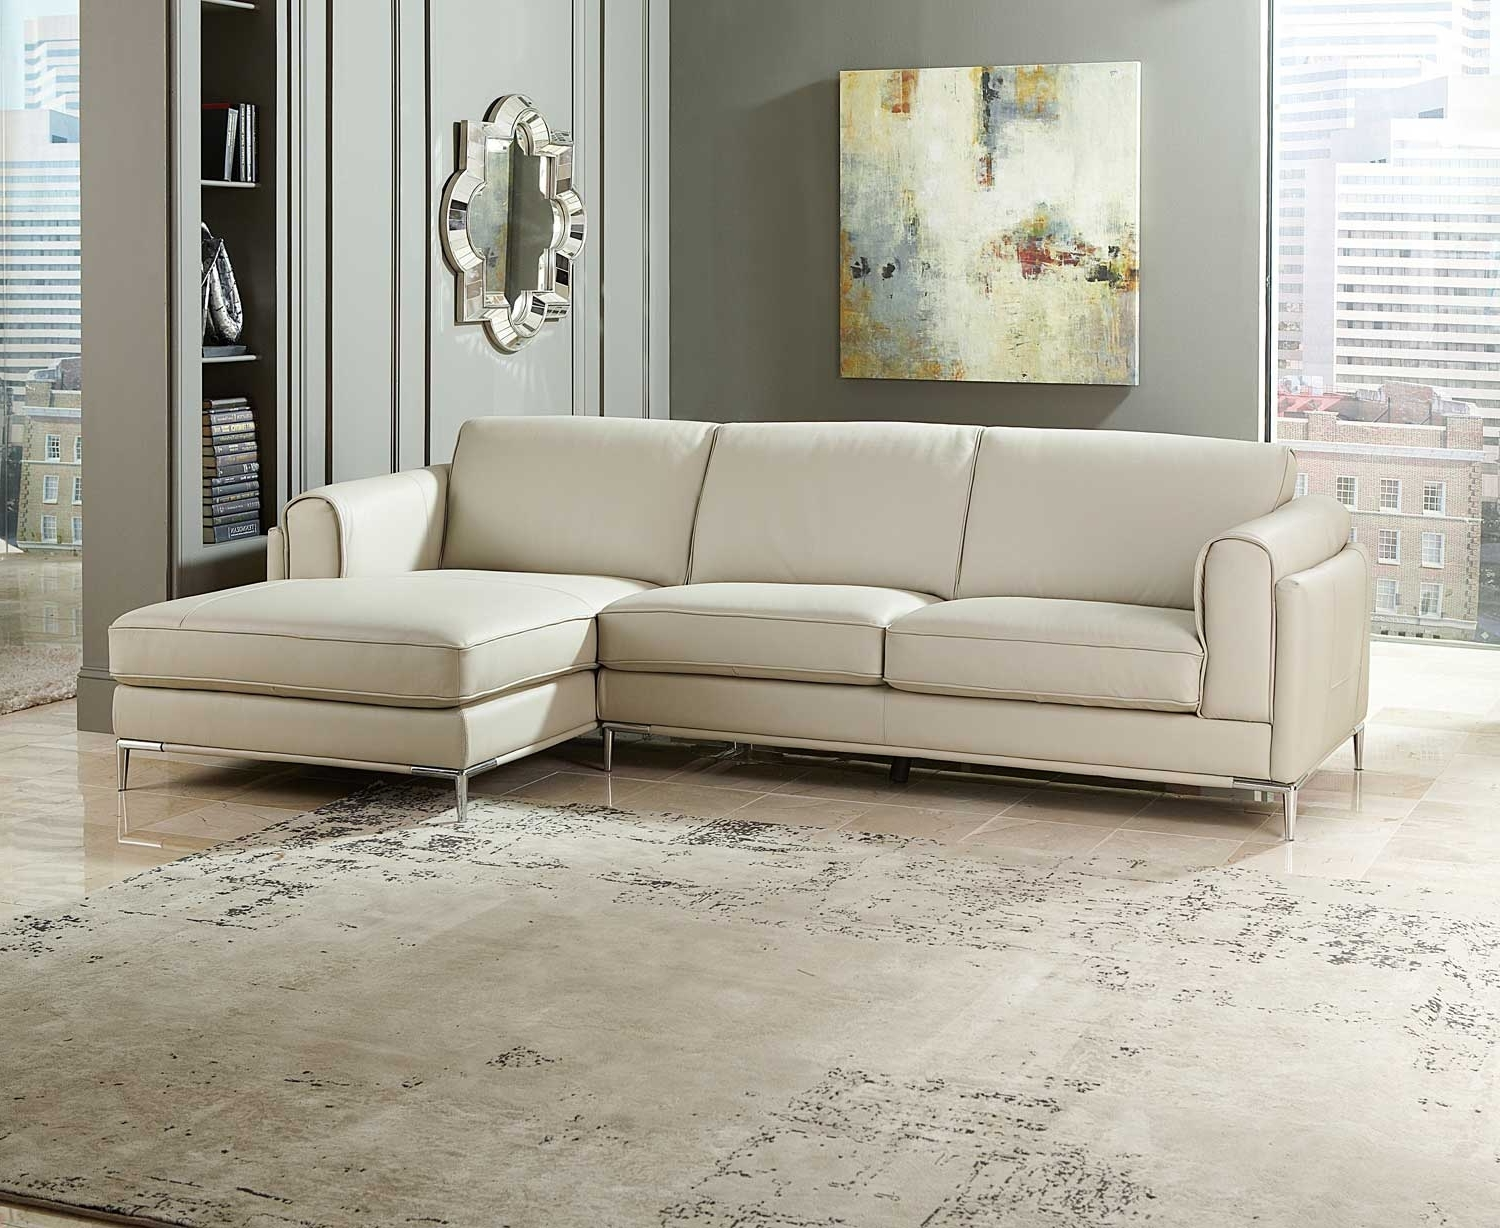 Preferred Homelegance Hugo Sectional Sofa – Beige Top Grain Leather & Split For Beige Sectional Sofas (View 8 of 20)